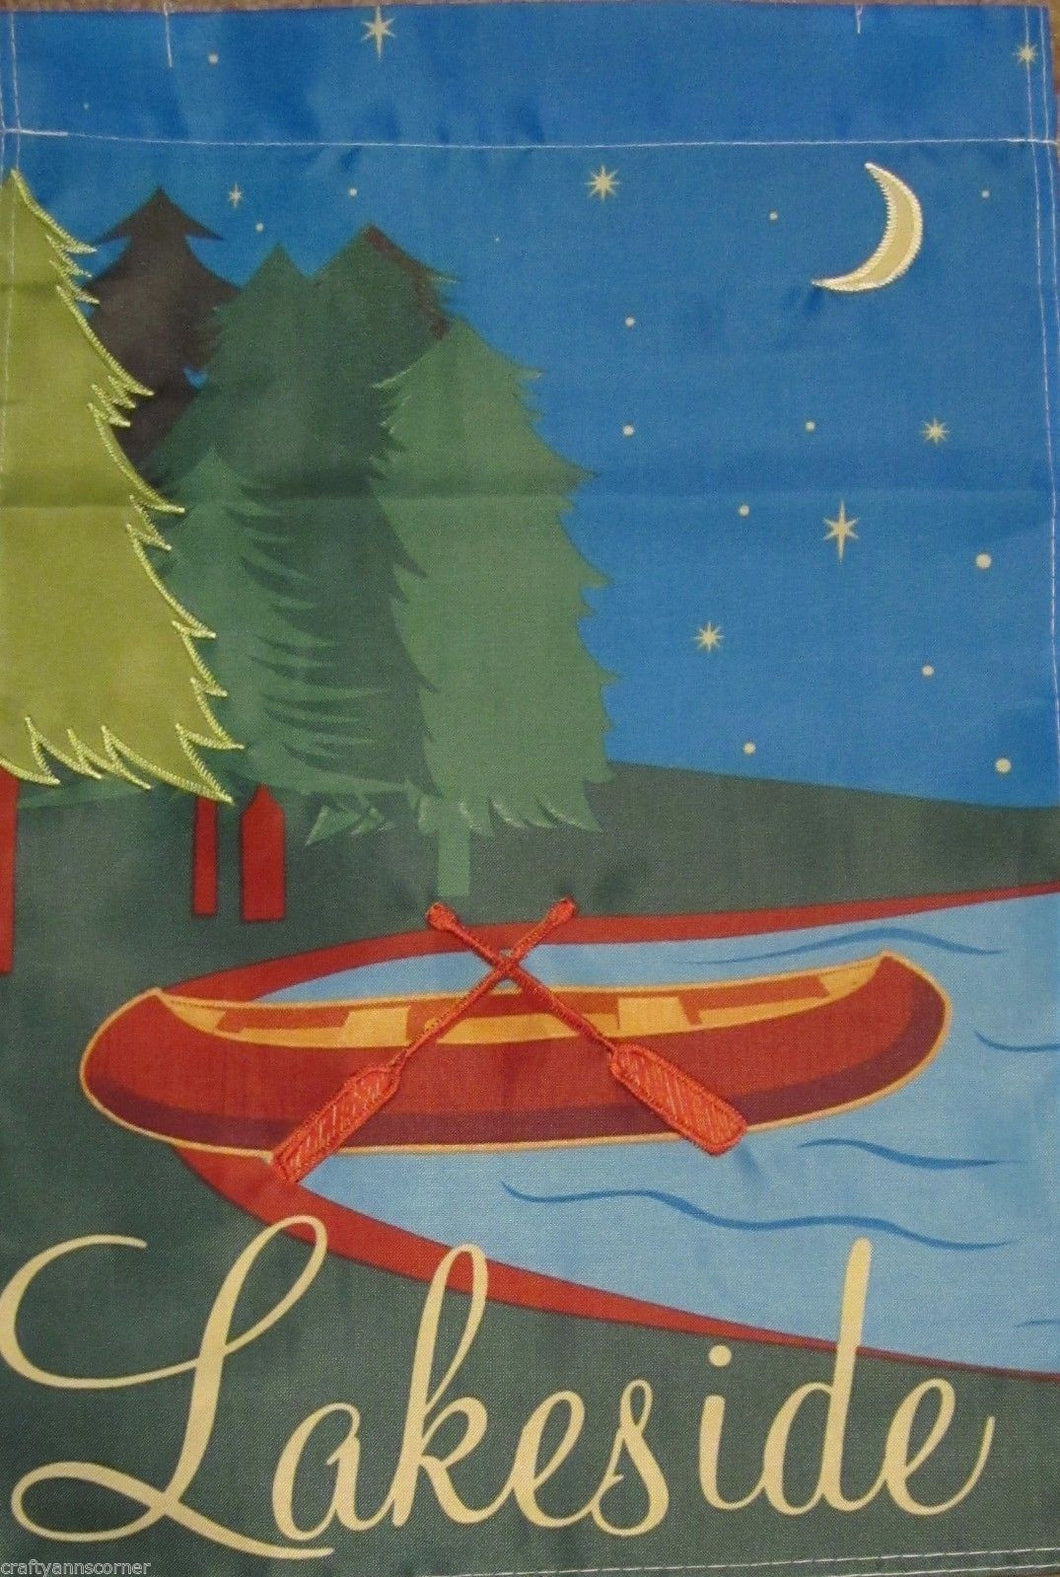 Lakeside Canoe Trees Night Moon Lake Mini Garden Flag 12 x 18